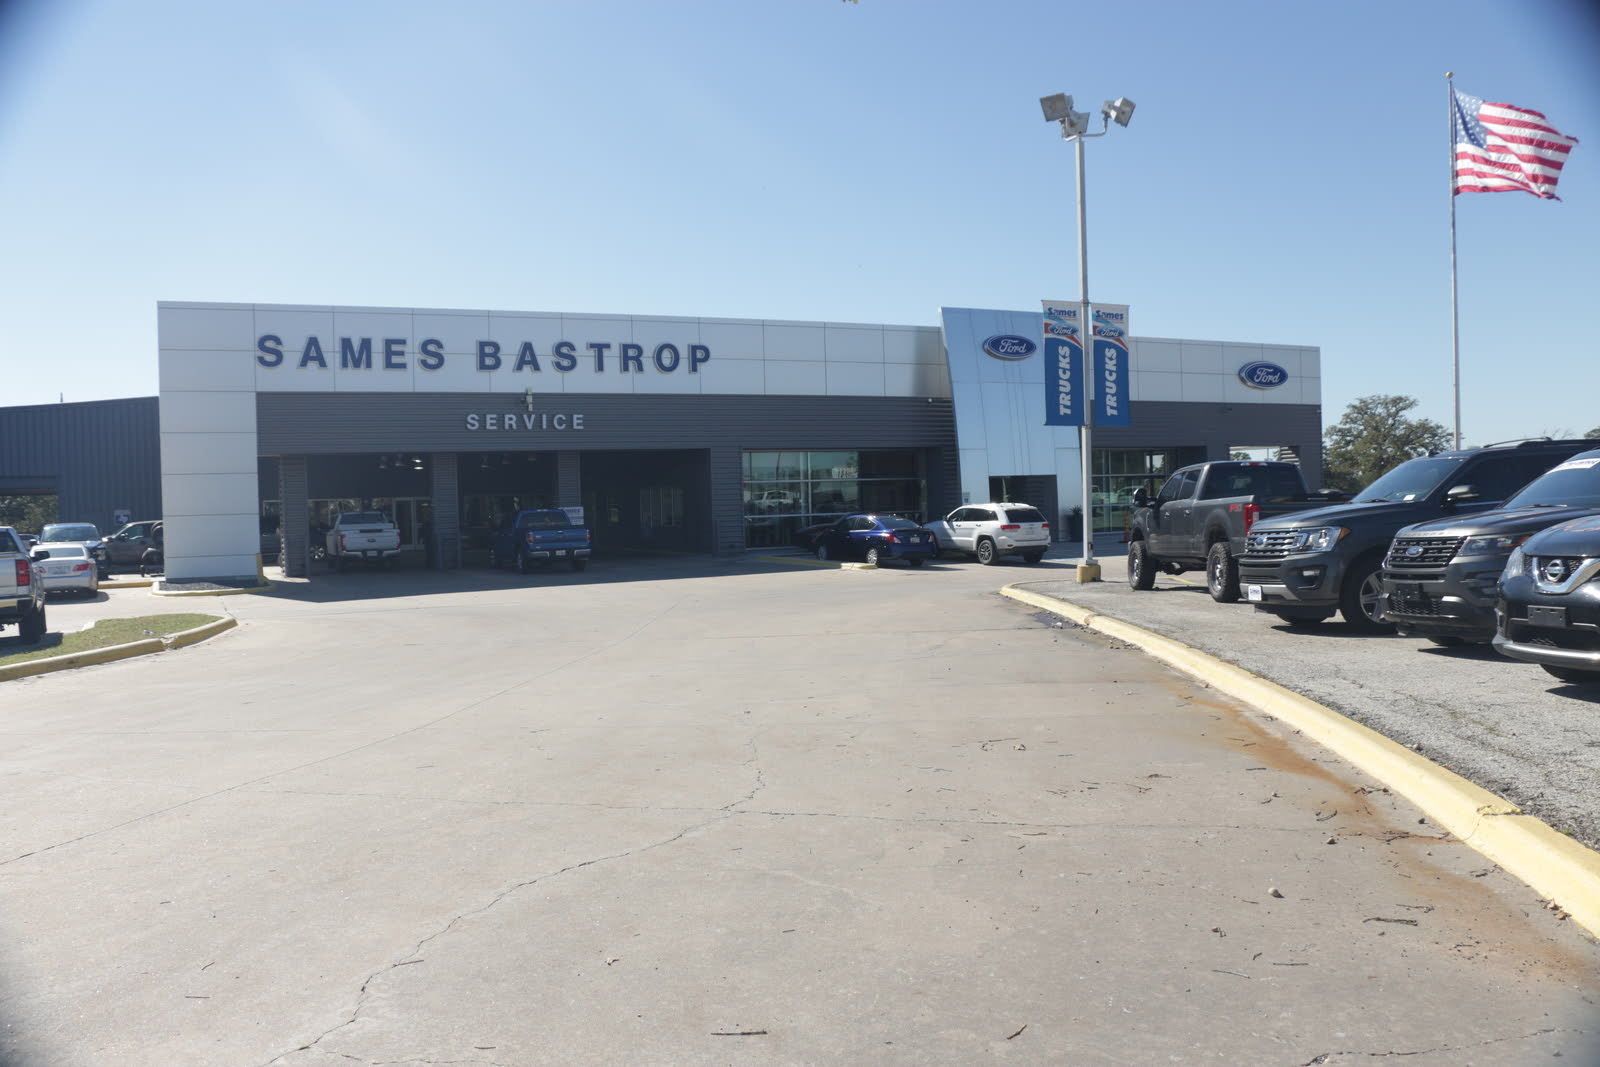 Sames Ford Bastrop >> Sames Bastrop Ford - Bastrop, TX: Read Consumer reviews, Browse Used and New Cars for Sale